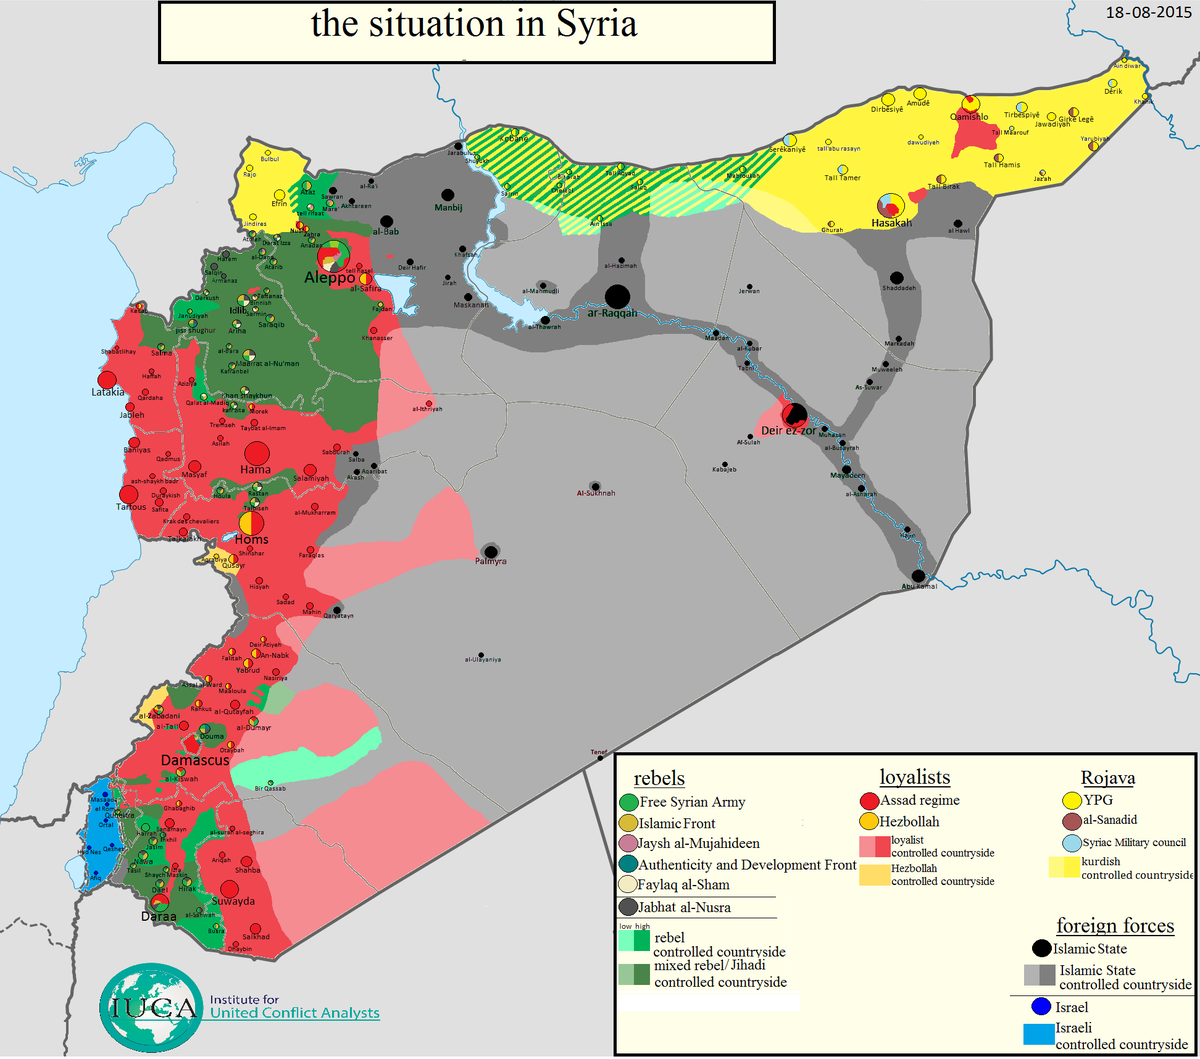 thomas van linge on twitter syria map update the situation in syria as of 18082015 bigger at httpstcolx4pipyg0g fsa saa is ypg jn